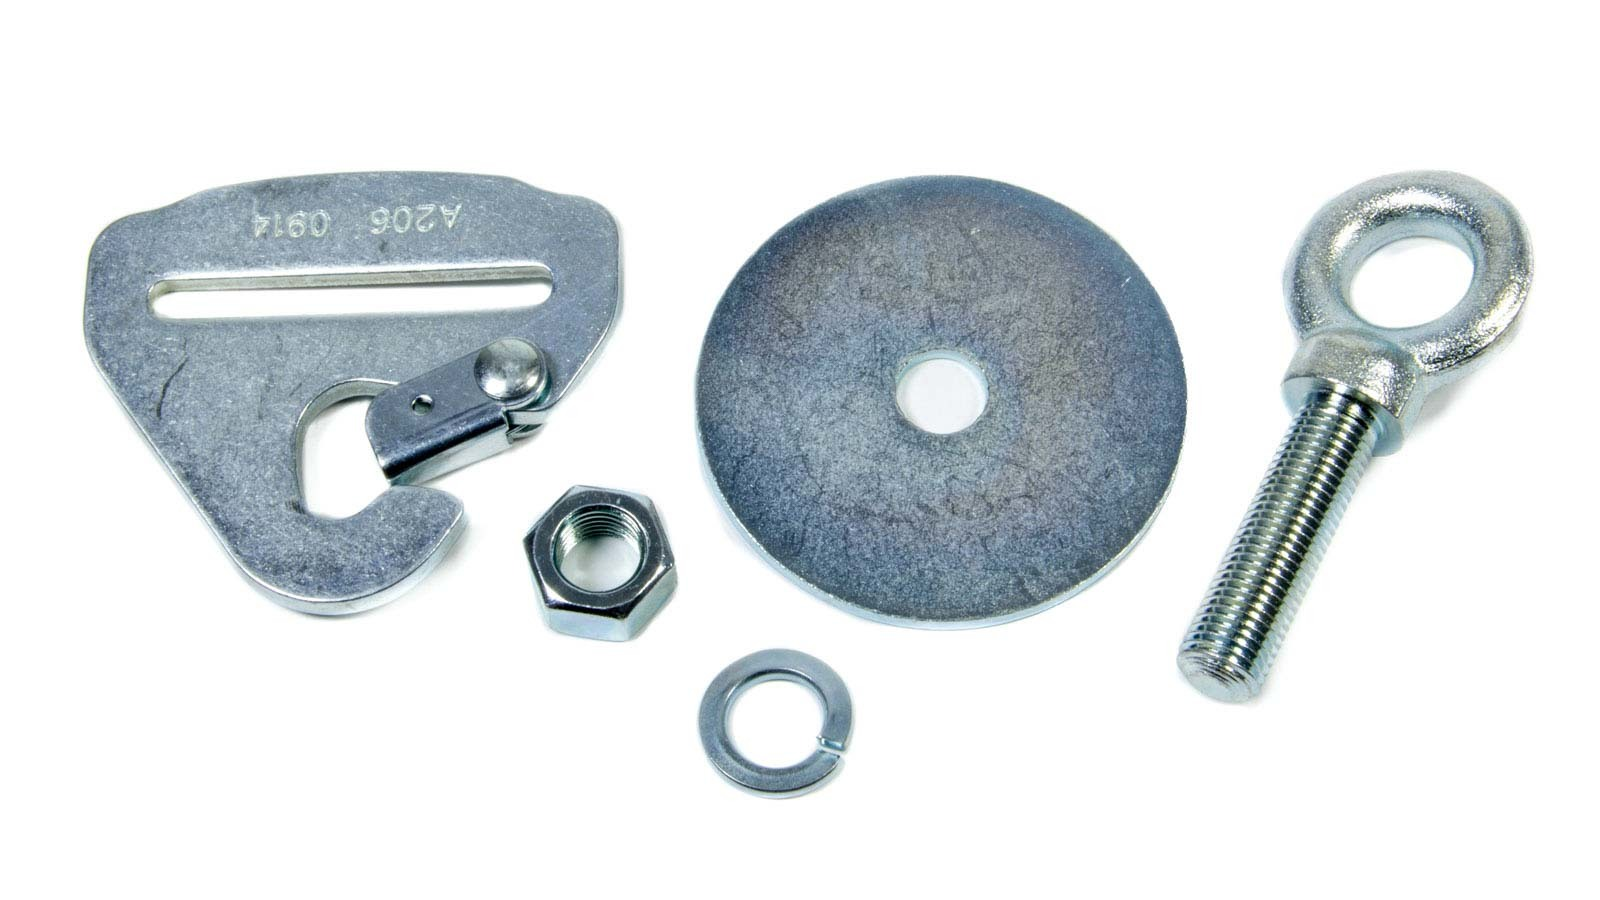 Eye Bolt Nut And Washer W/ Floor Mount Snap